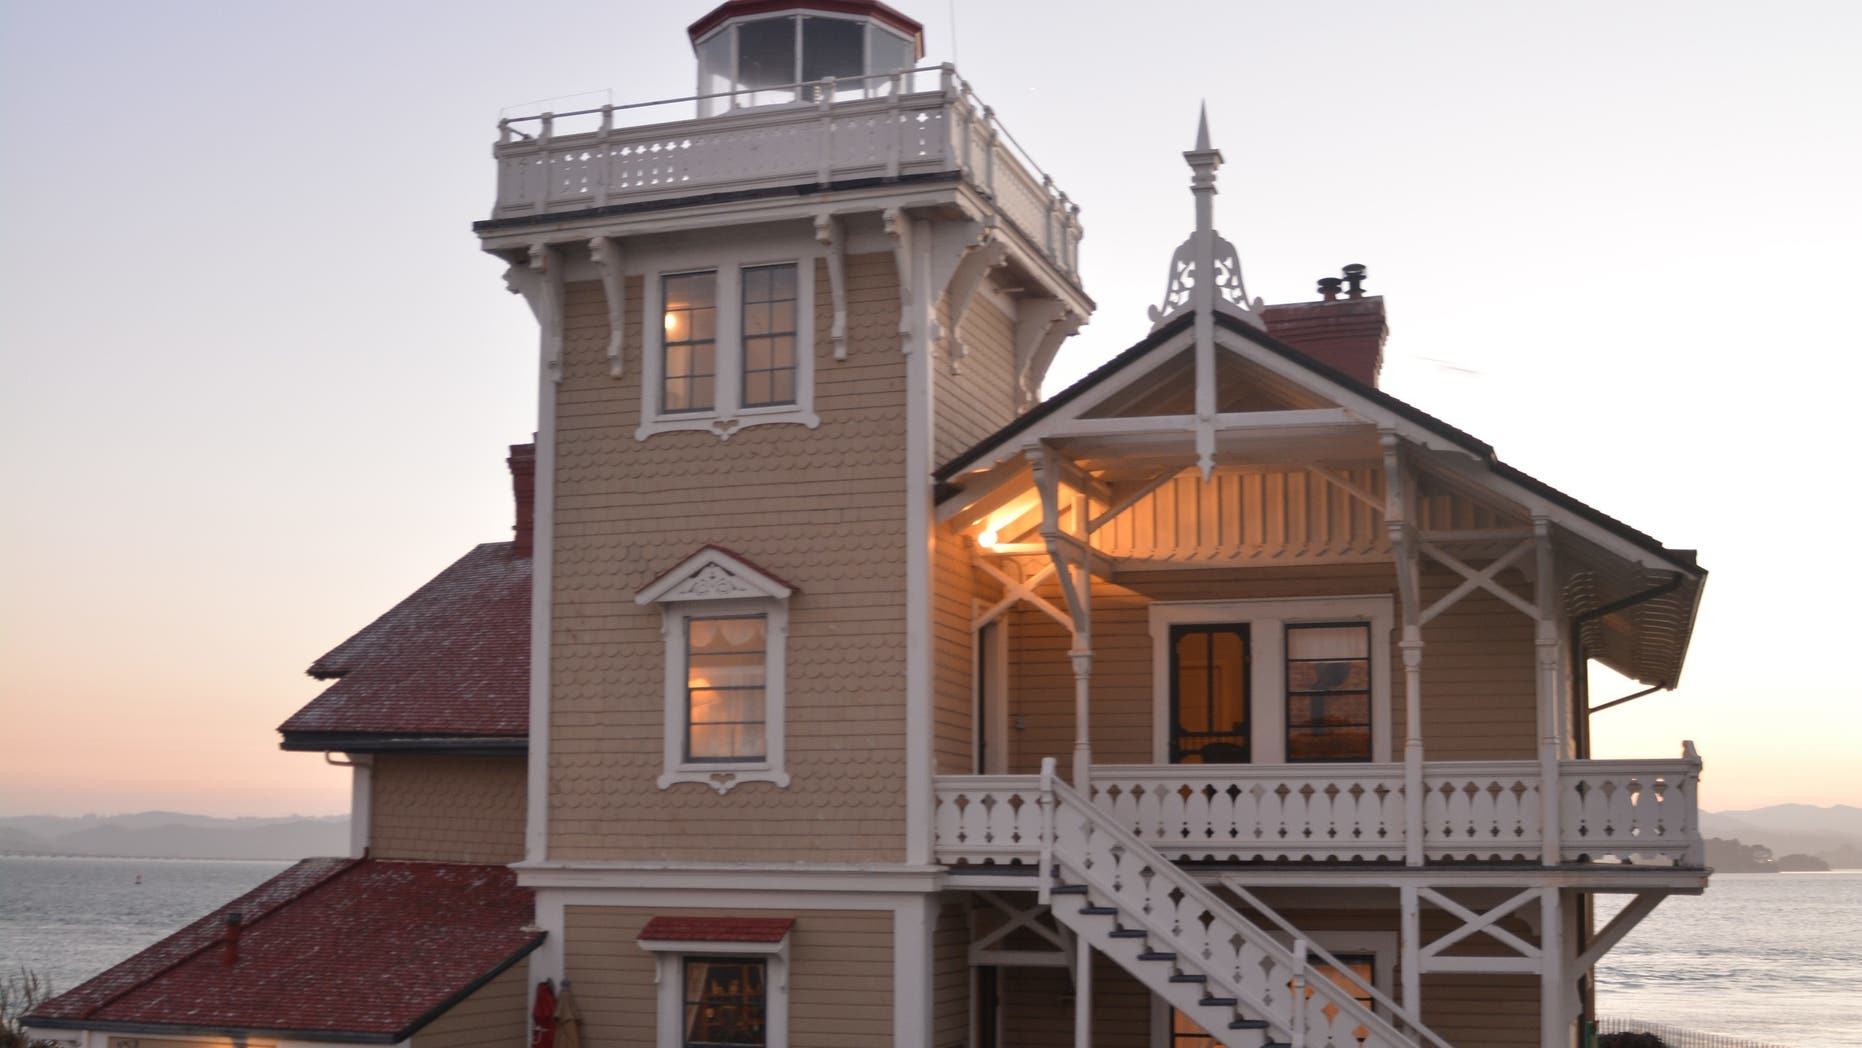 A lighthouse in the San Francisco bay is looking for new keepers.